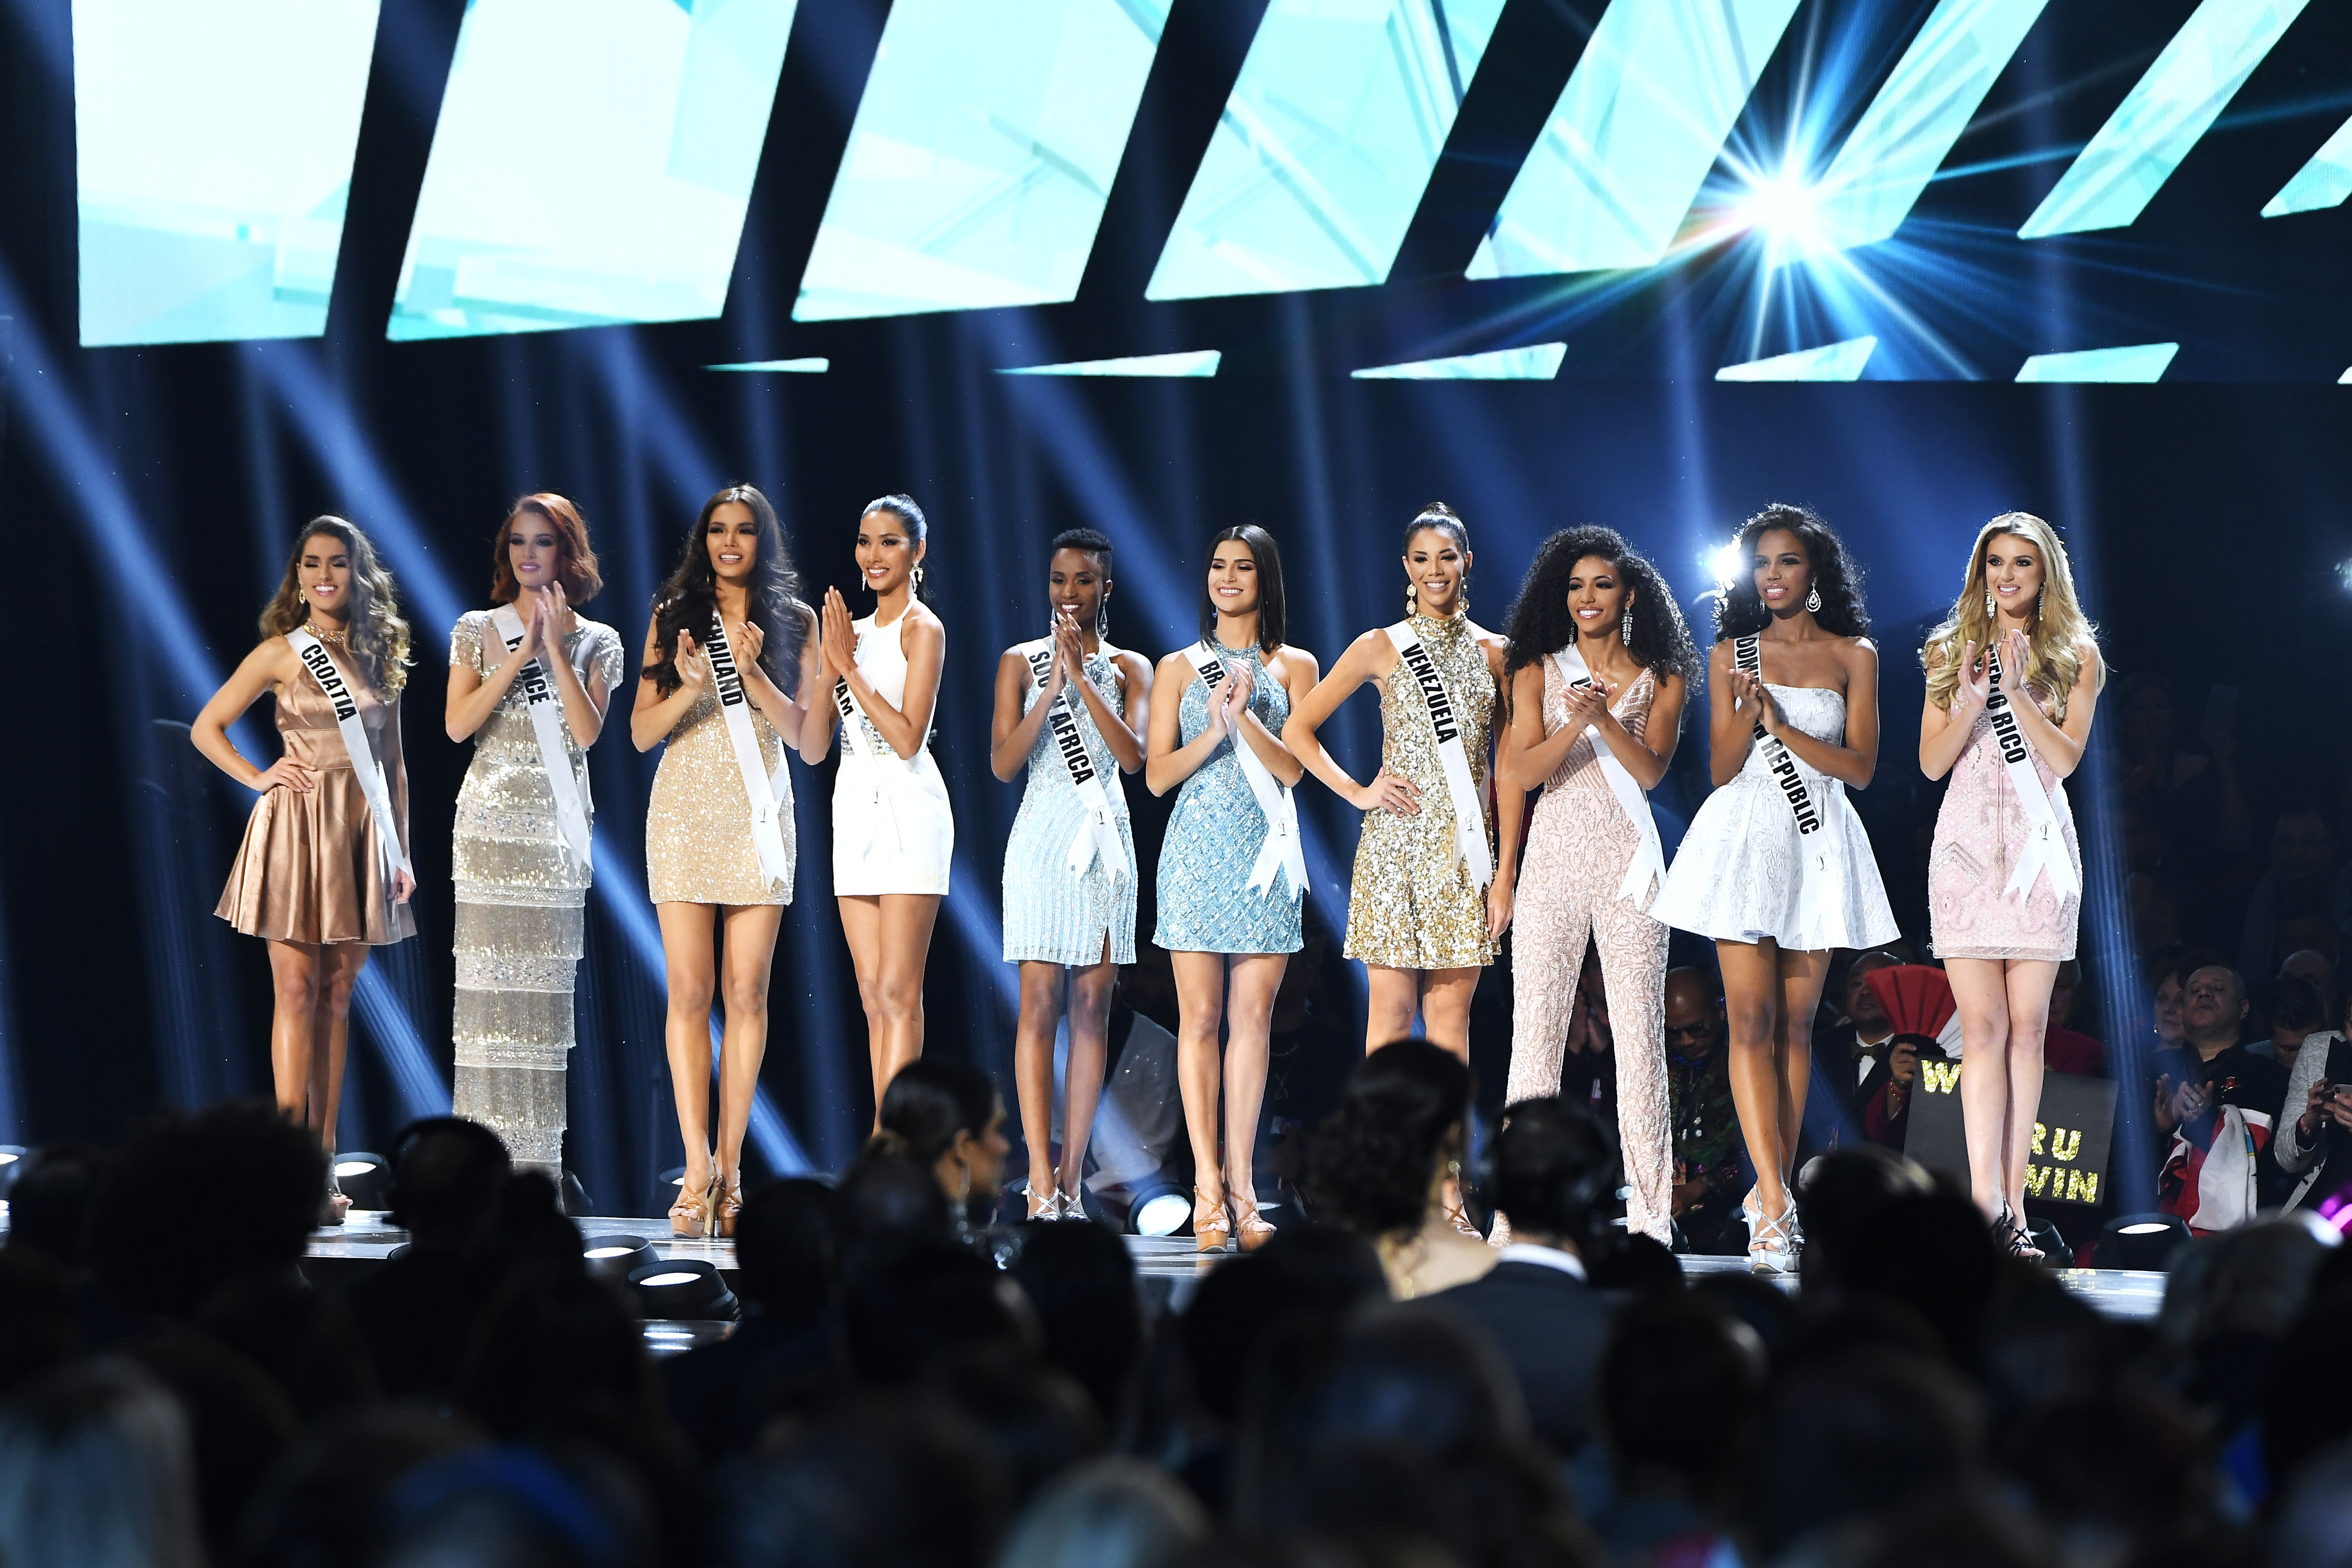 (L-R) Miss Croatia Mia Rkman, Miss France Maeva Coucke, Miss Thailand Paweensuda Drouin, Miss Vietnam Hoang Thuy, Miss South Africa Zozibini Tunzi, Miss Brazil Julia Horta, Miss Venezuela Thalia Olvino, Miss USA Cheslie Kryst, Miss Dominican Republic Clauvid Daly and Miss Puerto Rico Madison Anderson appear onstage at the 2019 Miss Universe Pageant at Tyler Perry Studios on December 08, 2019 in Atlanta, Georgia. Photo: AFP